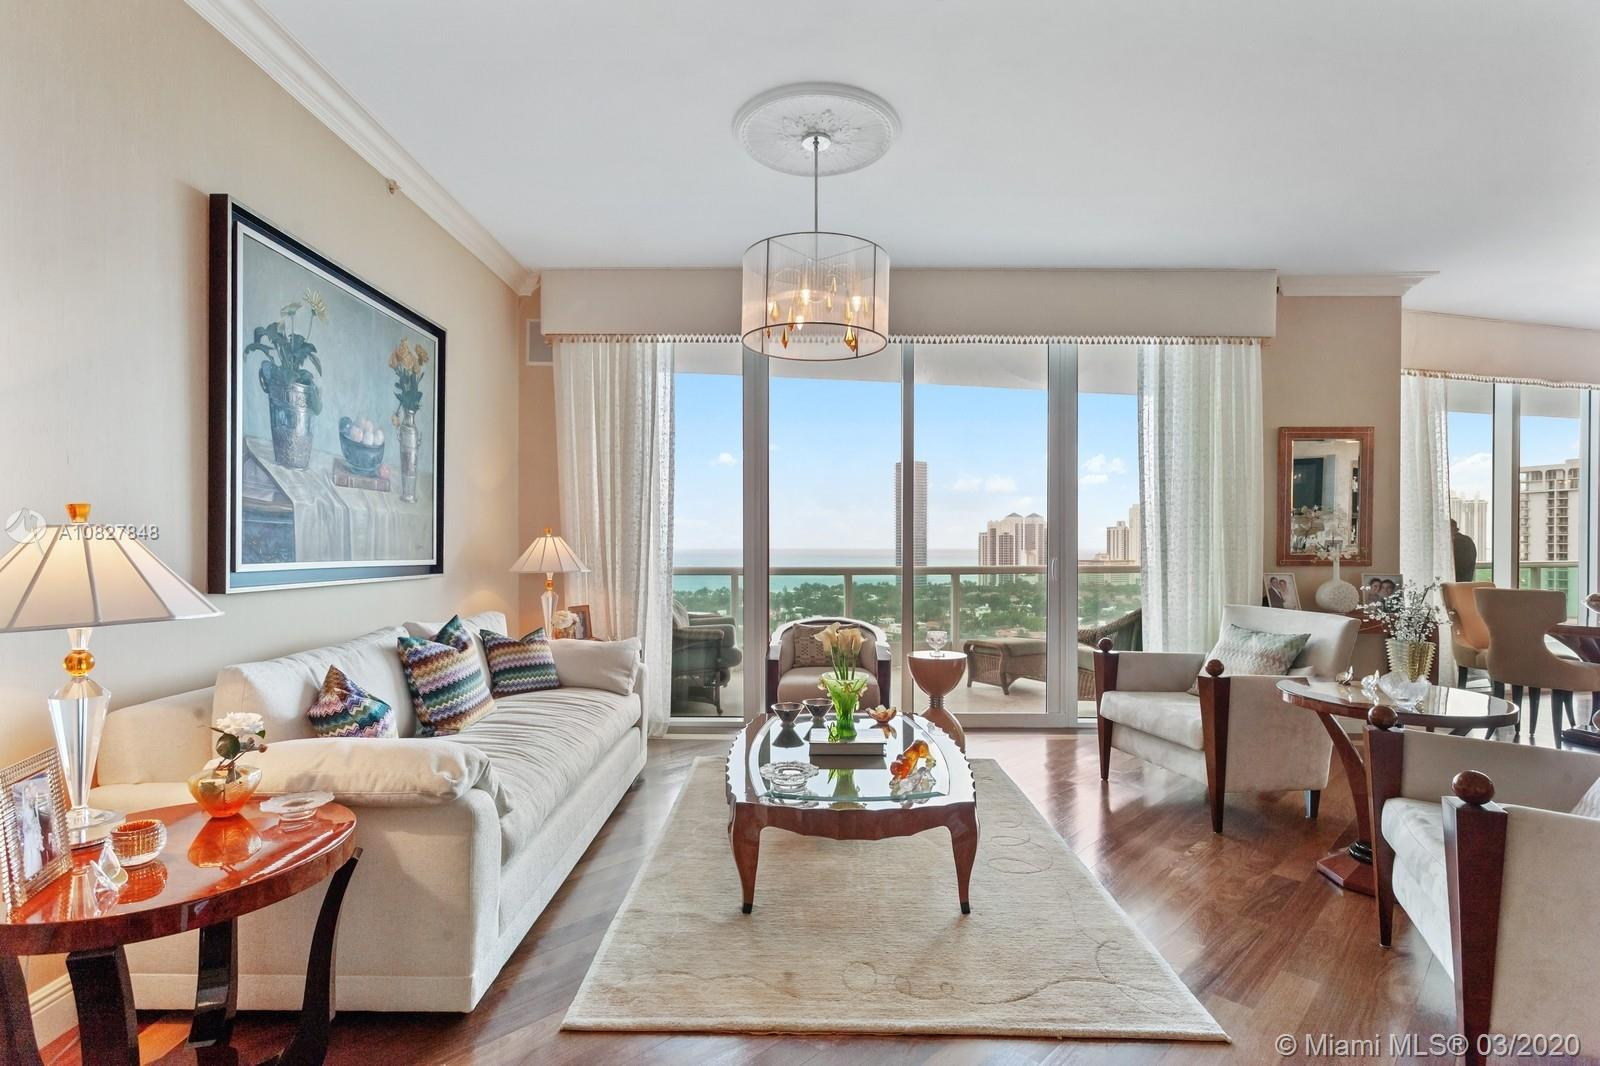 Magnificent condo in the heart of Aventura, featuring over 5100 SF with 6 bedrooms and 6.5 baths, this palace in the sky has gorgeous views of the golf course, city and ocean. The residence features hardwood flooring, beautiful lighting fixtures, and design details throughout.  Live in Porto Vita, Aventura's most luxurious gated community.  A must see, easy to show! Building amenities include restaurants, basketball court, gym, tennis, spa facilities, and children's playground.